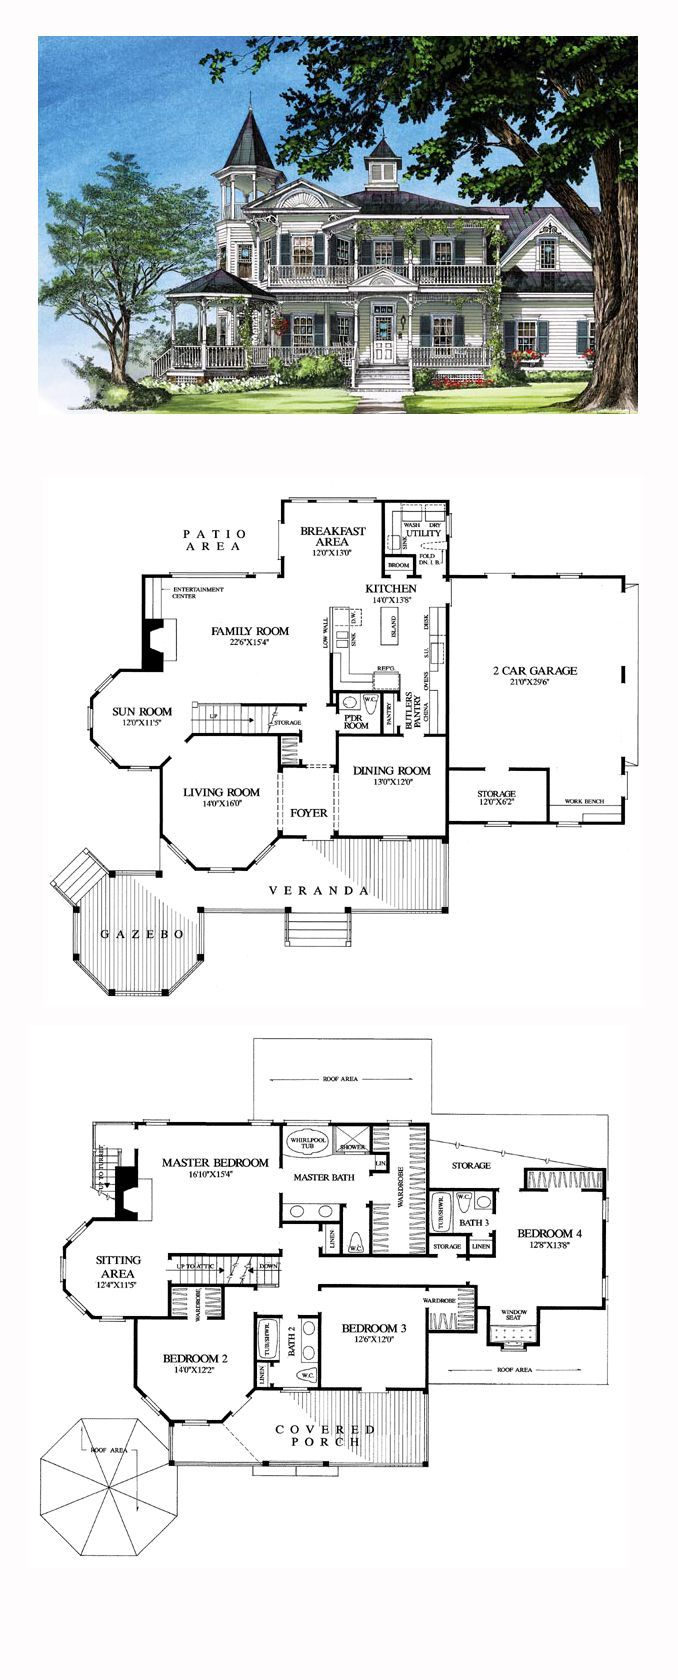 Victorian Style House Plan with 4 Bed 4 Bath 2 Car Garage